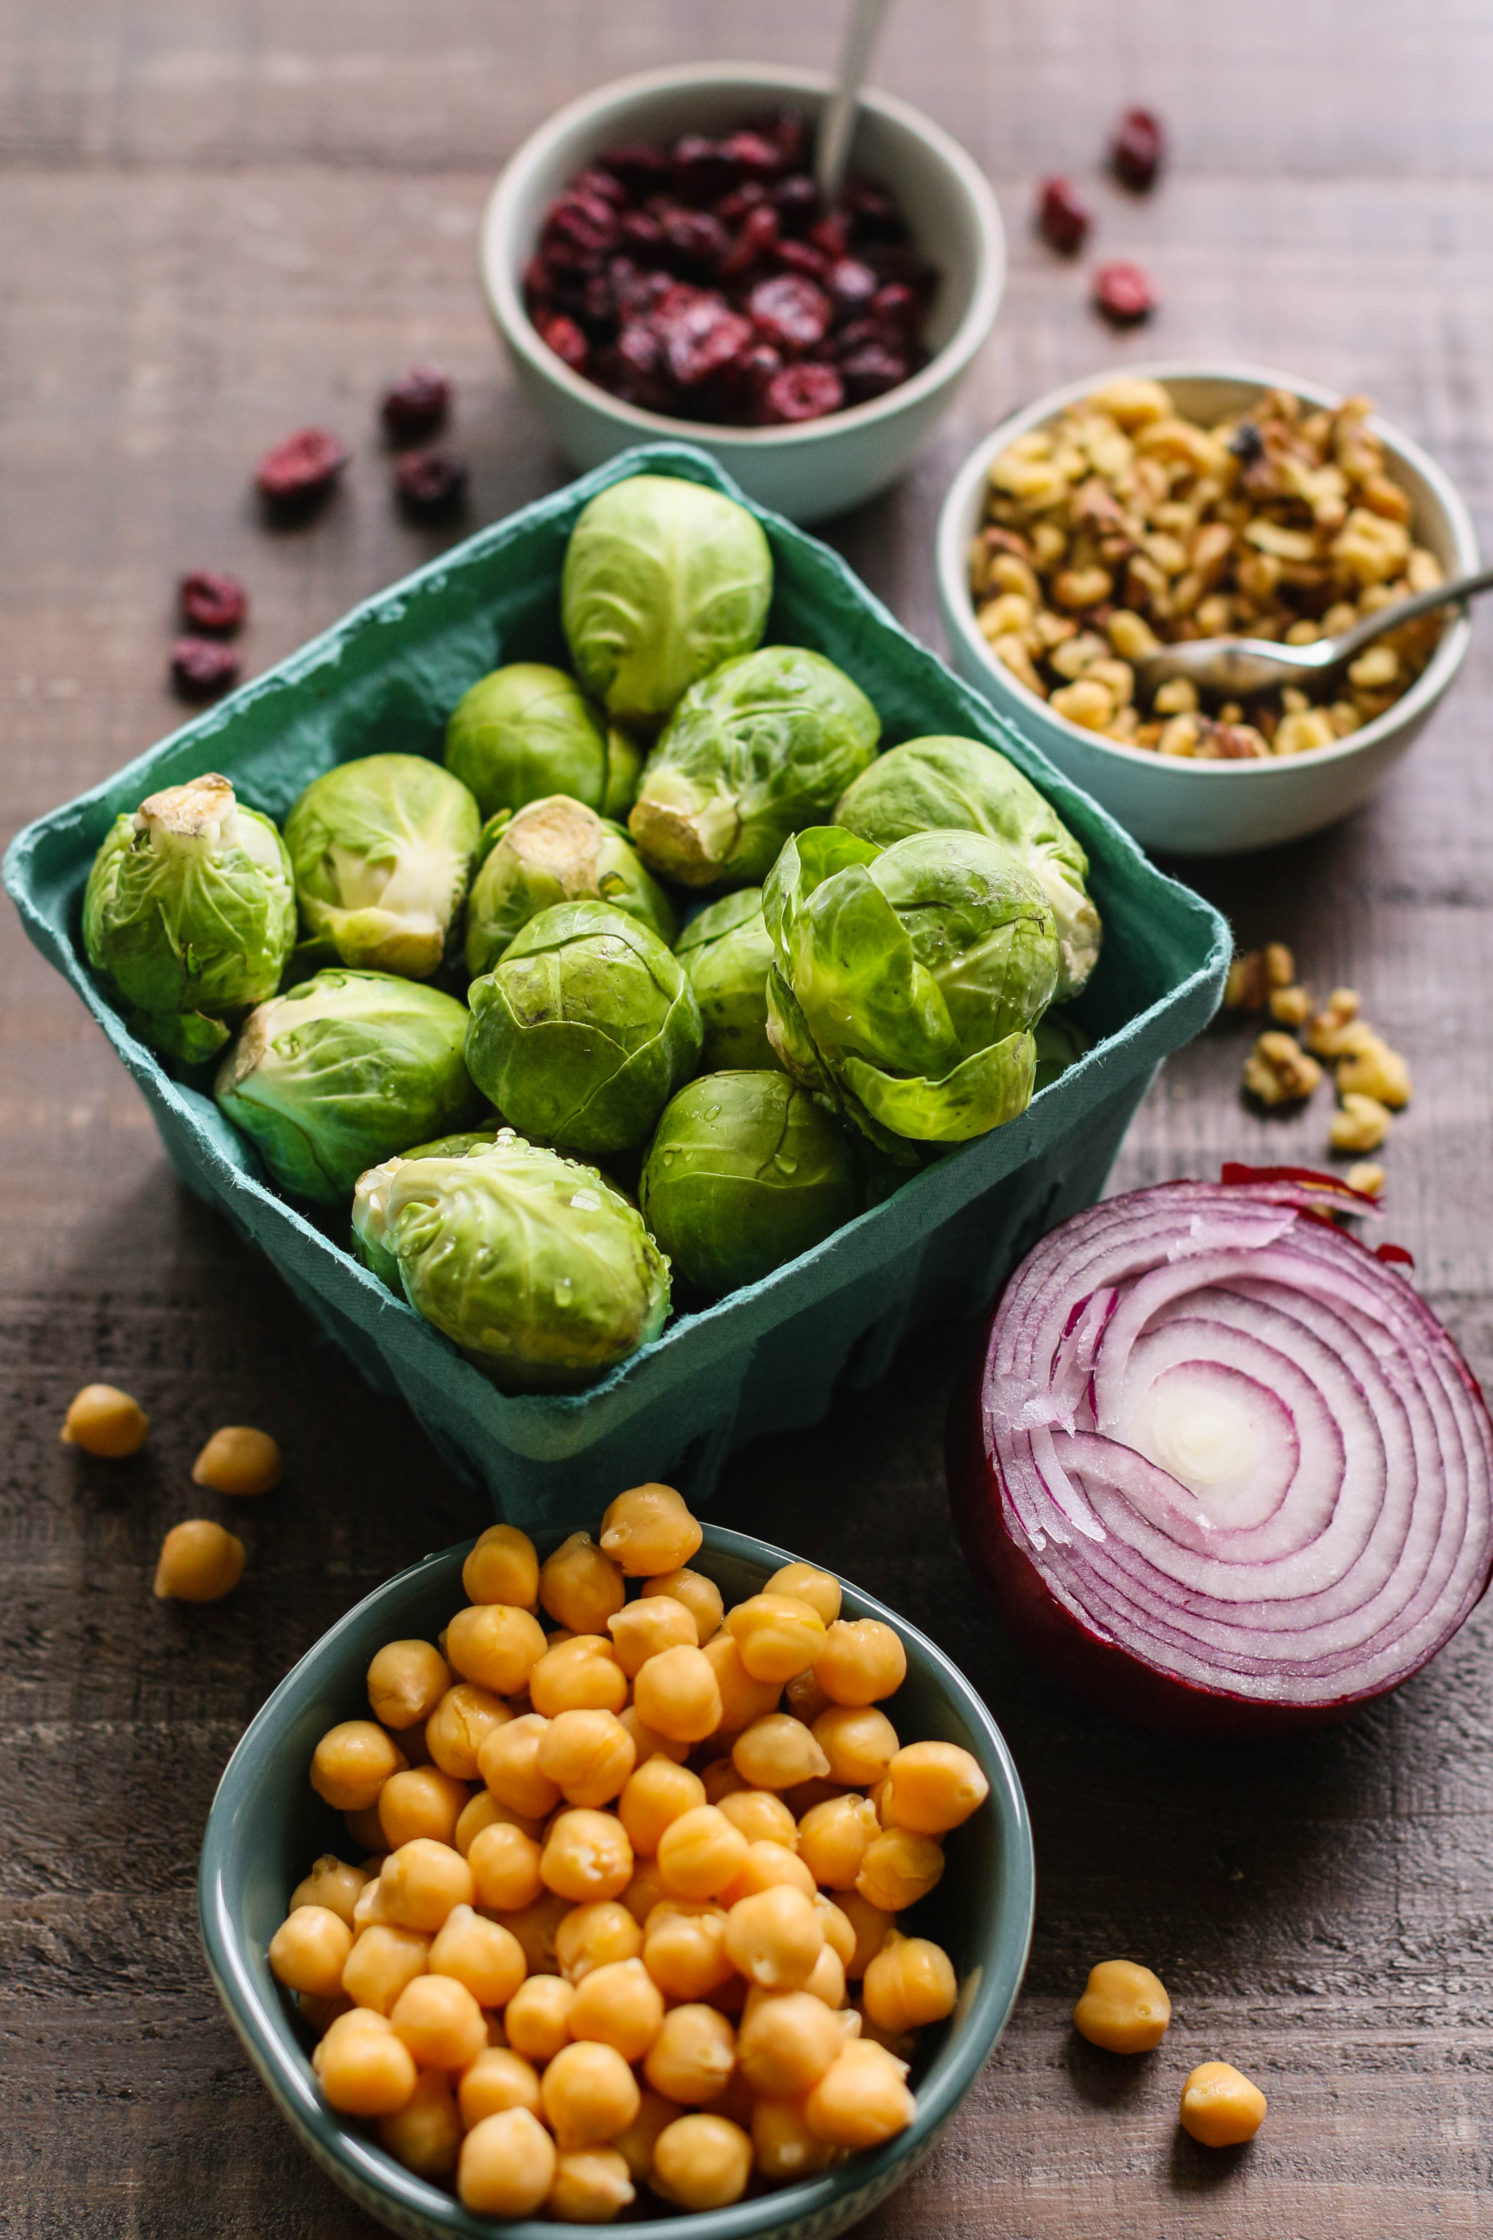 1-Pan Maple Balsamic Brussels Sprouts & Chickpeas Ingredients